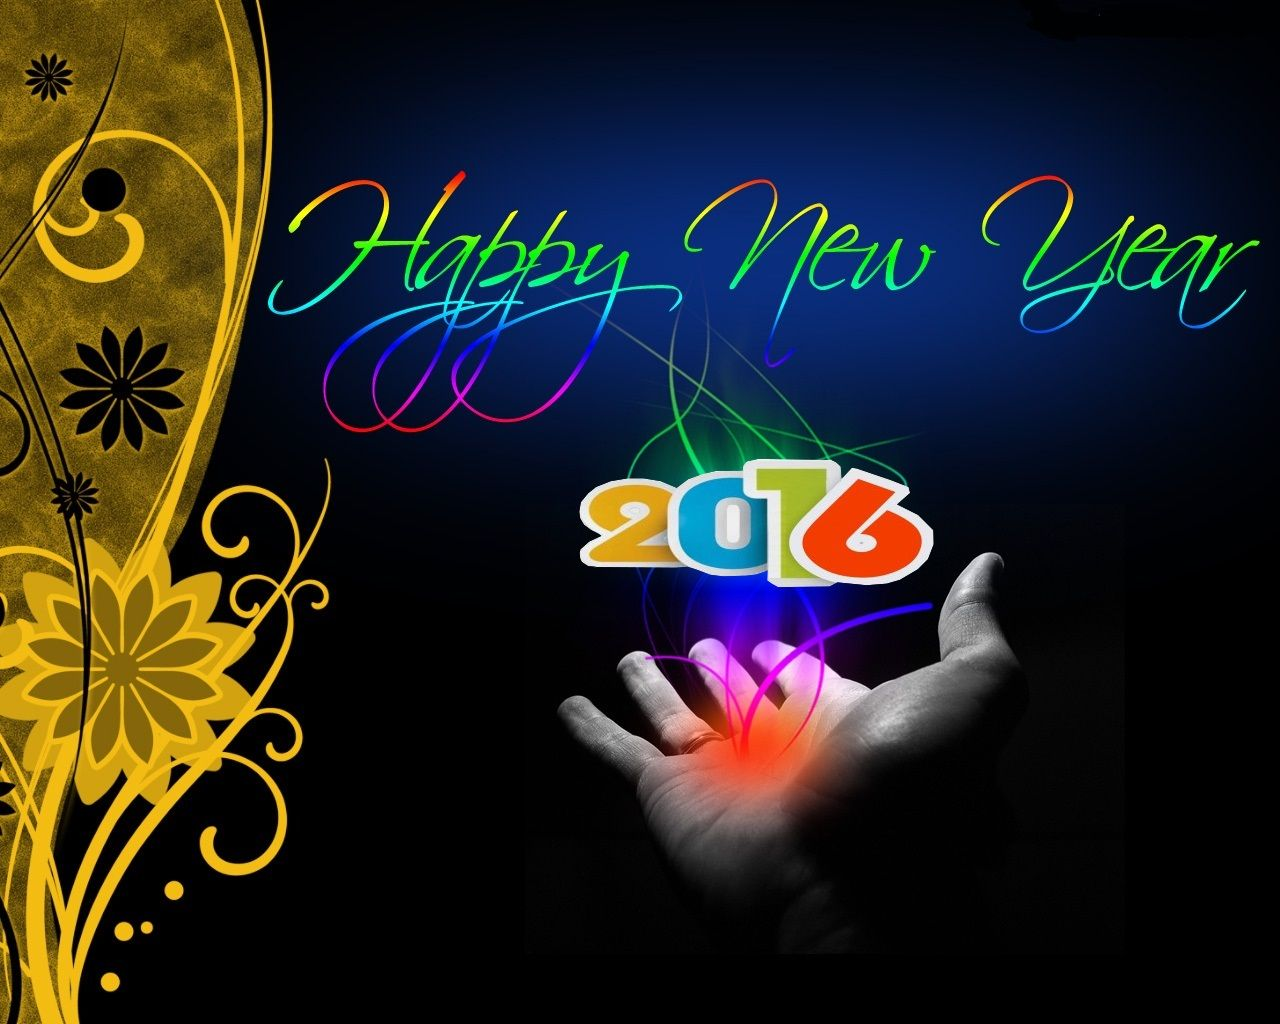 Free happy new year wallpaper download epic car wallpapers free happy new year wallpaper download voltagebd Image collections